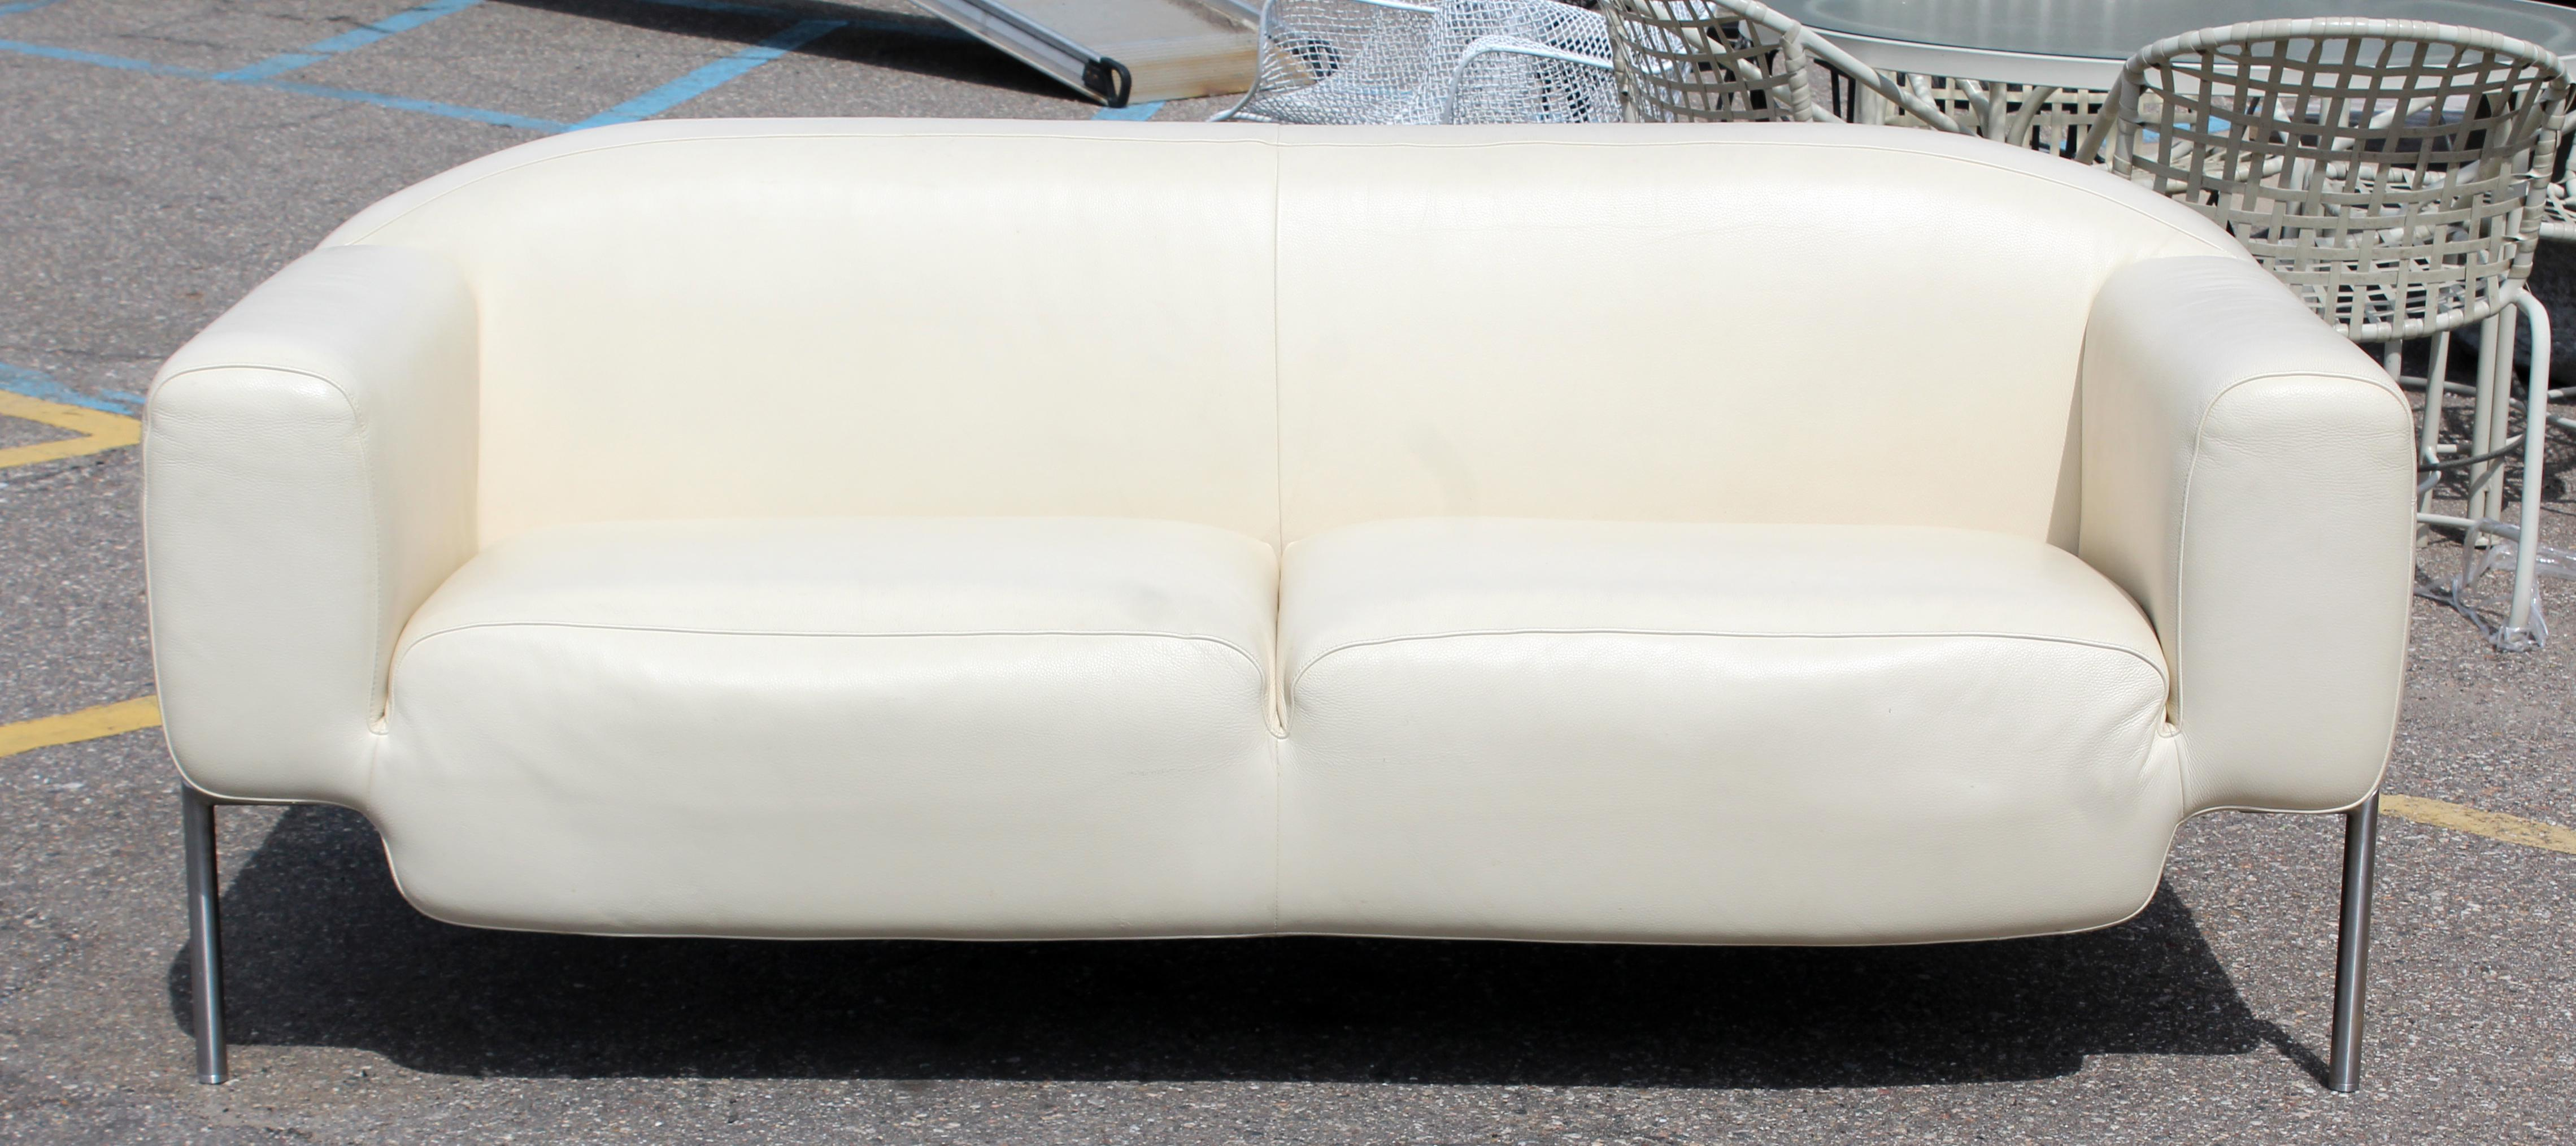 For Your Consideration Is A Fabulous, White Leather Sofa, On A Steel Frame.